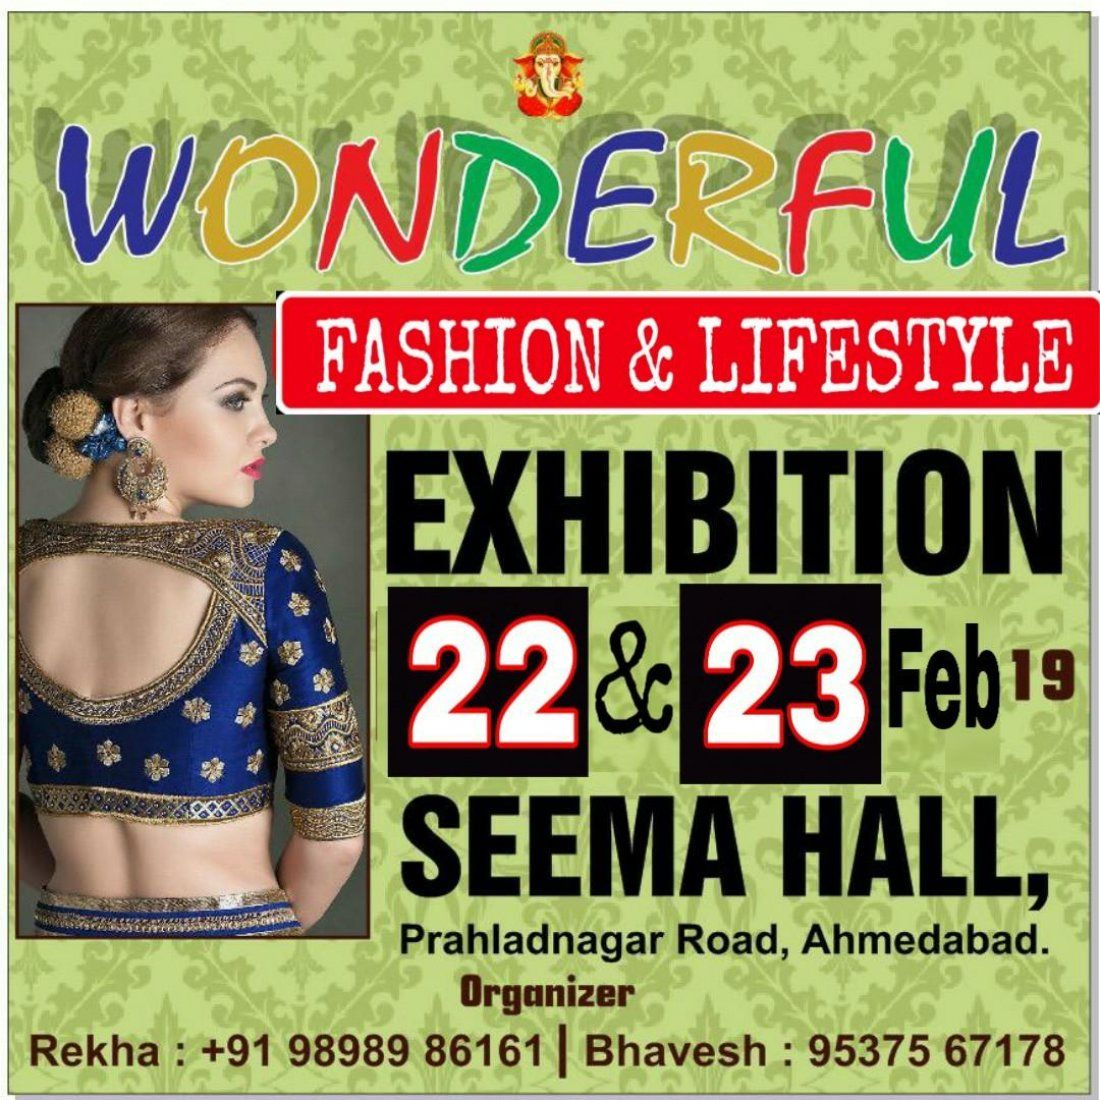 WONDERFUL FASHION & LIFESTYLE EXHIBITION